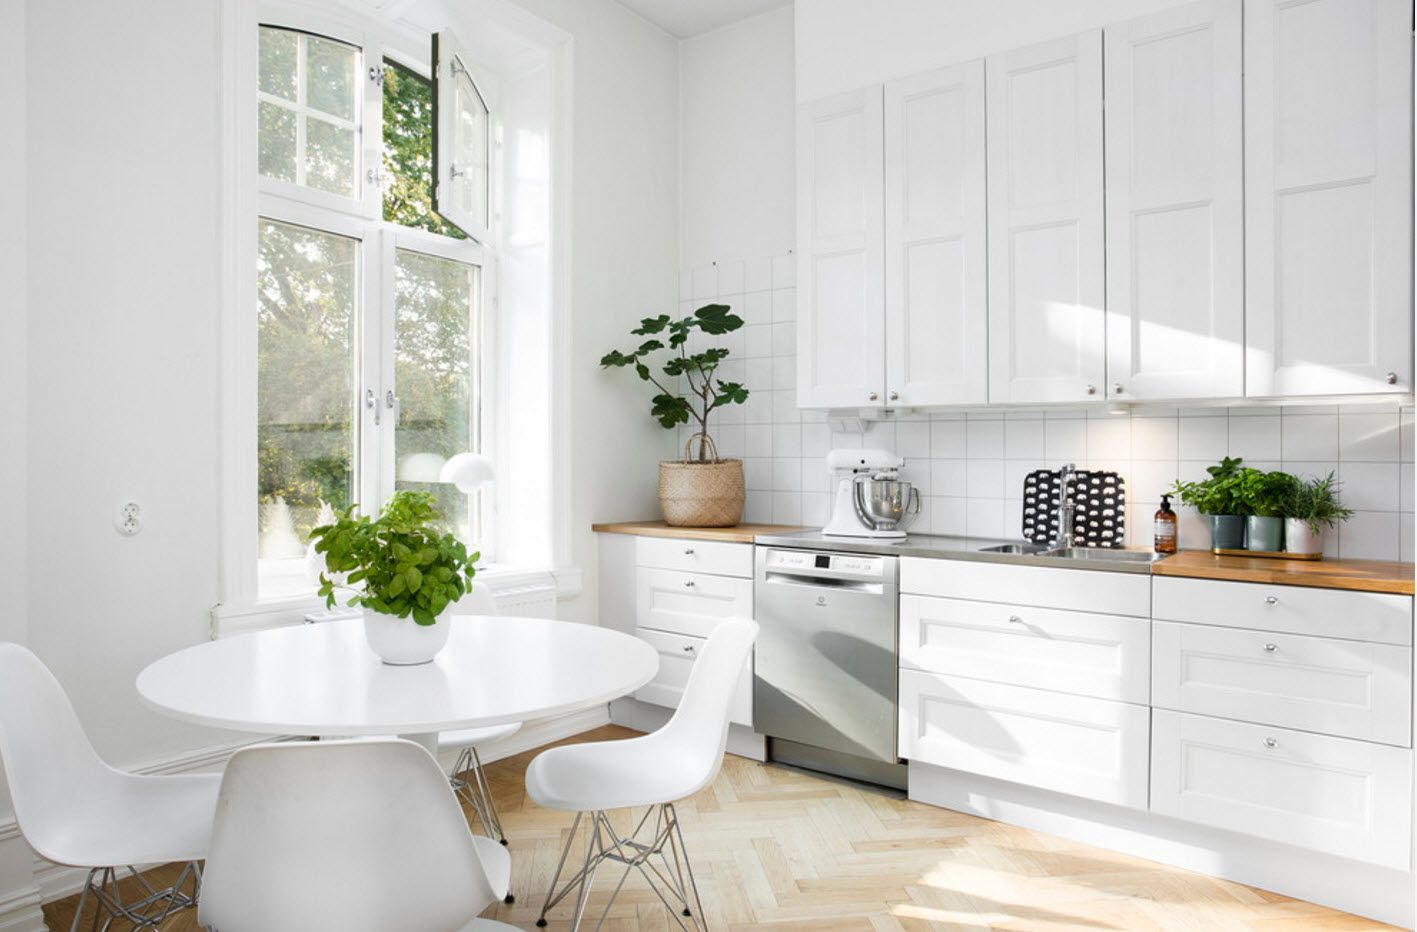 Absolutely white interior of the kitchen diluted with the greenery